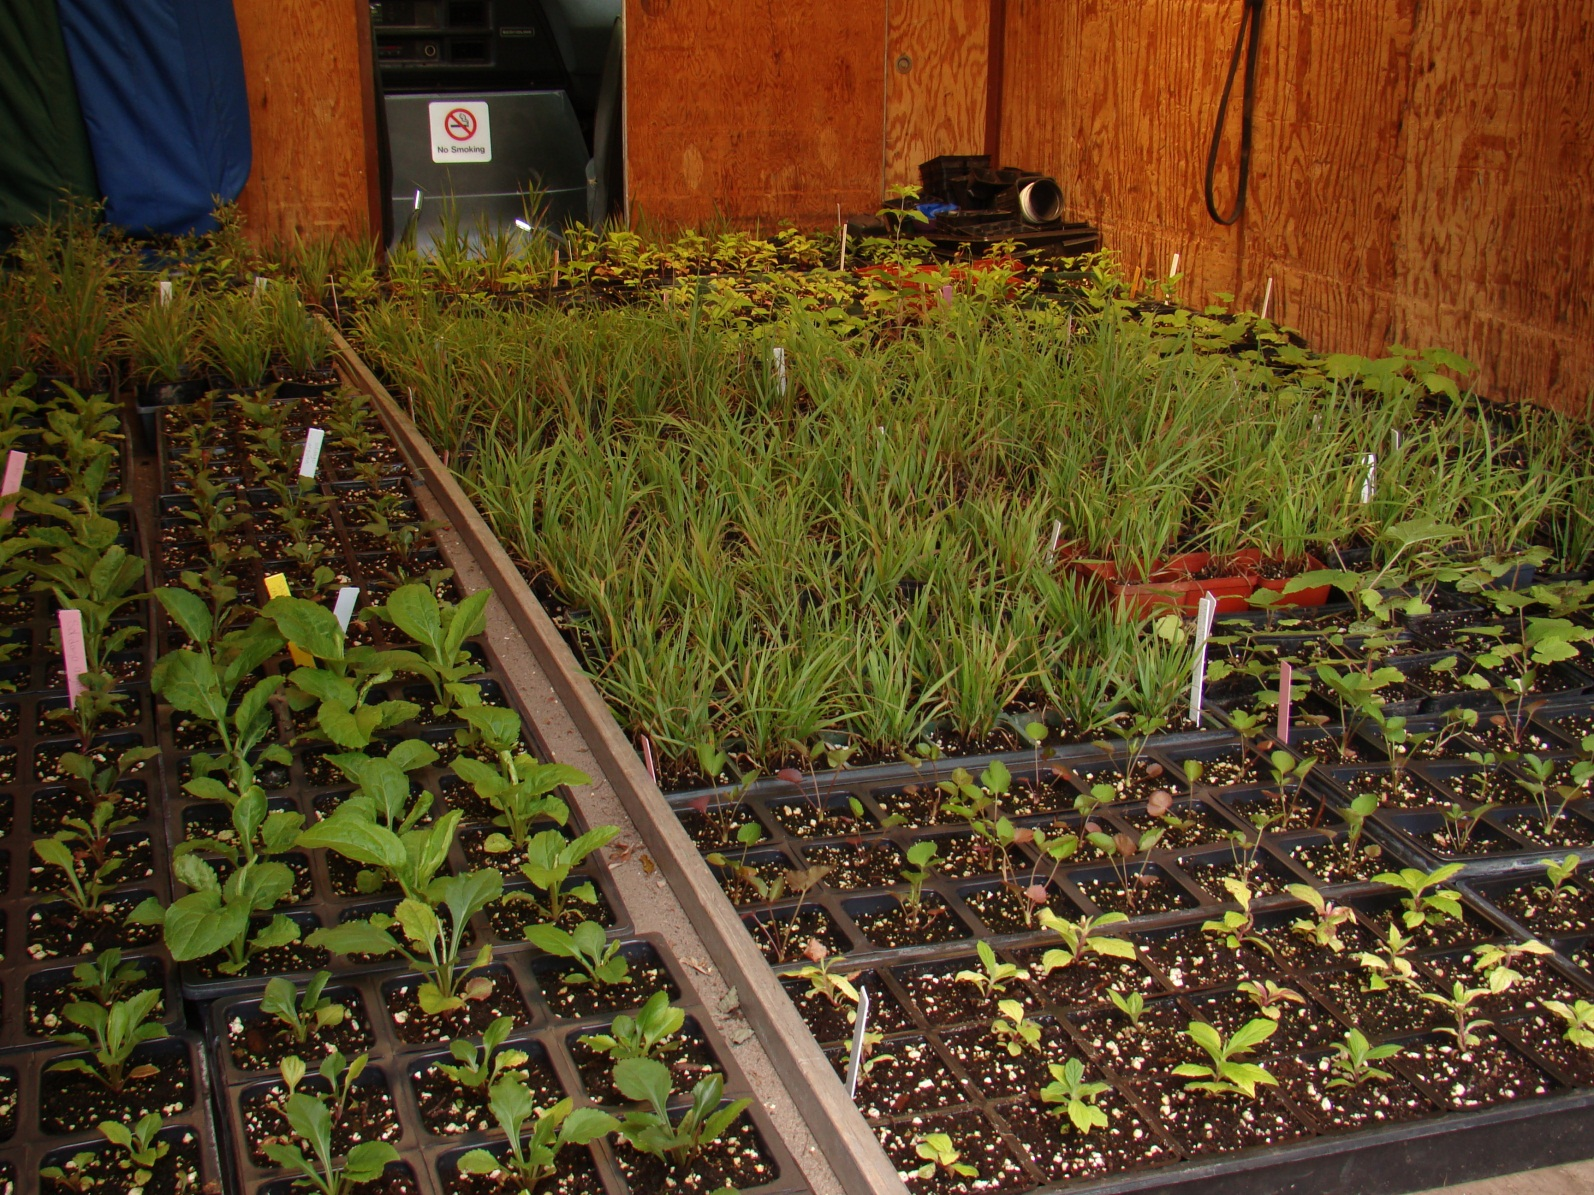 Seedlings in a greenhouse